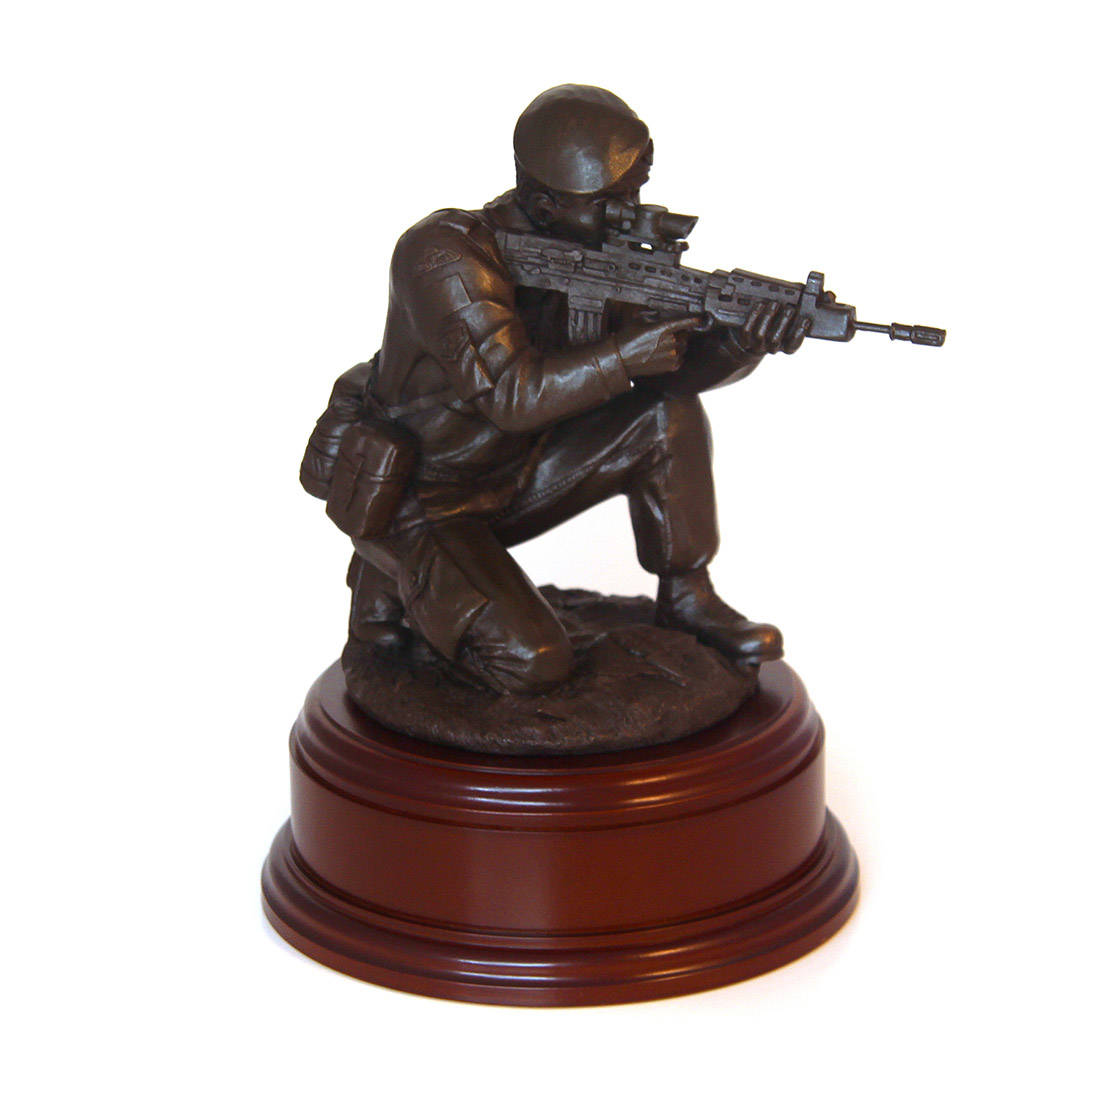 Para Shooting With SA80 Statue (11 Inch, Resin Bronze)